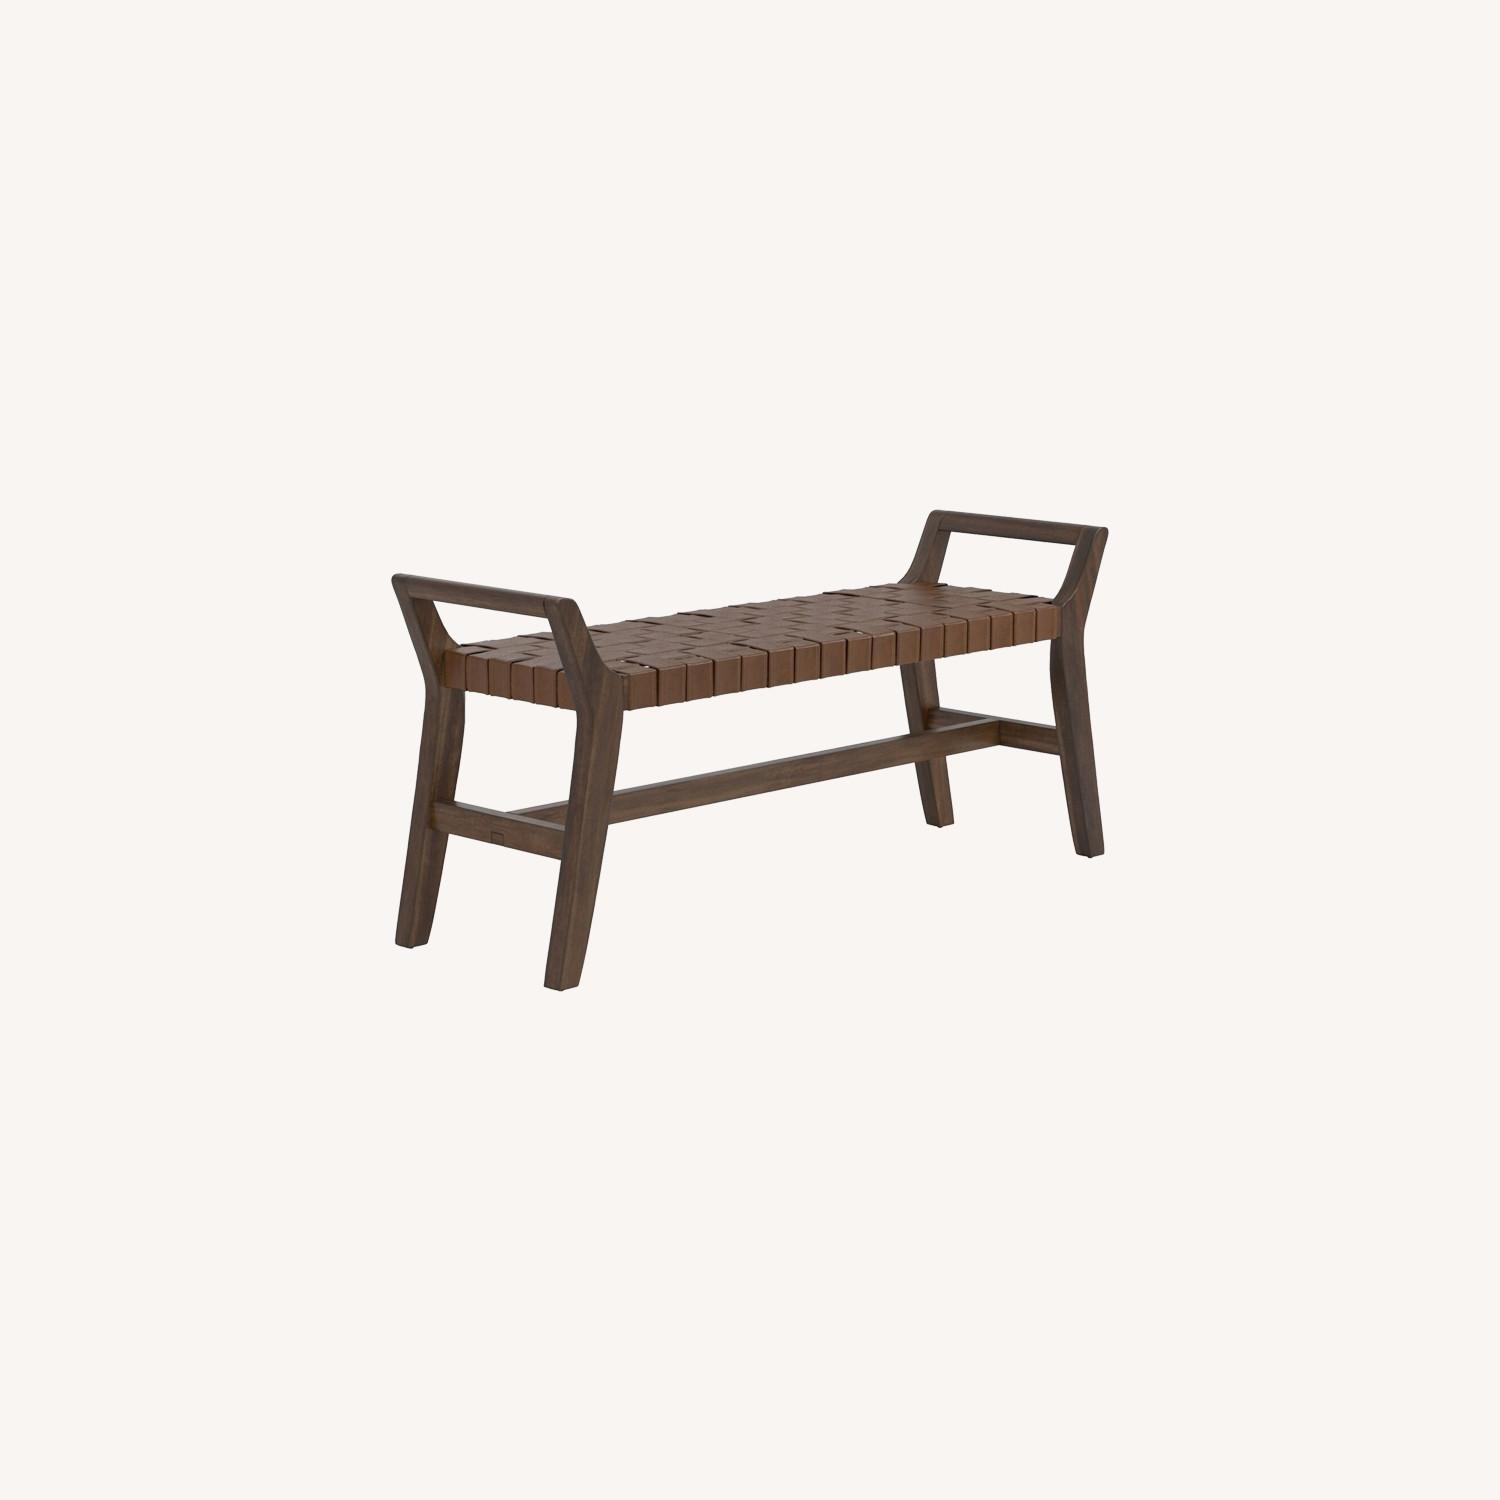 Modern Bench Made W/ Woven Brown Leatherette - image-3